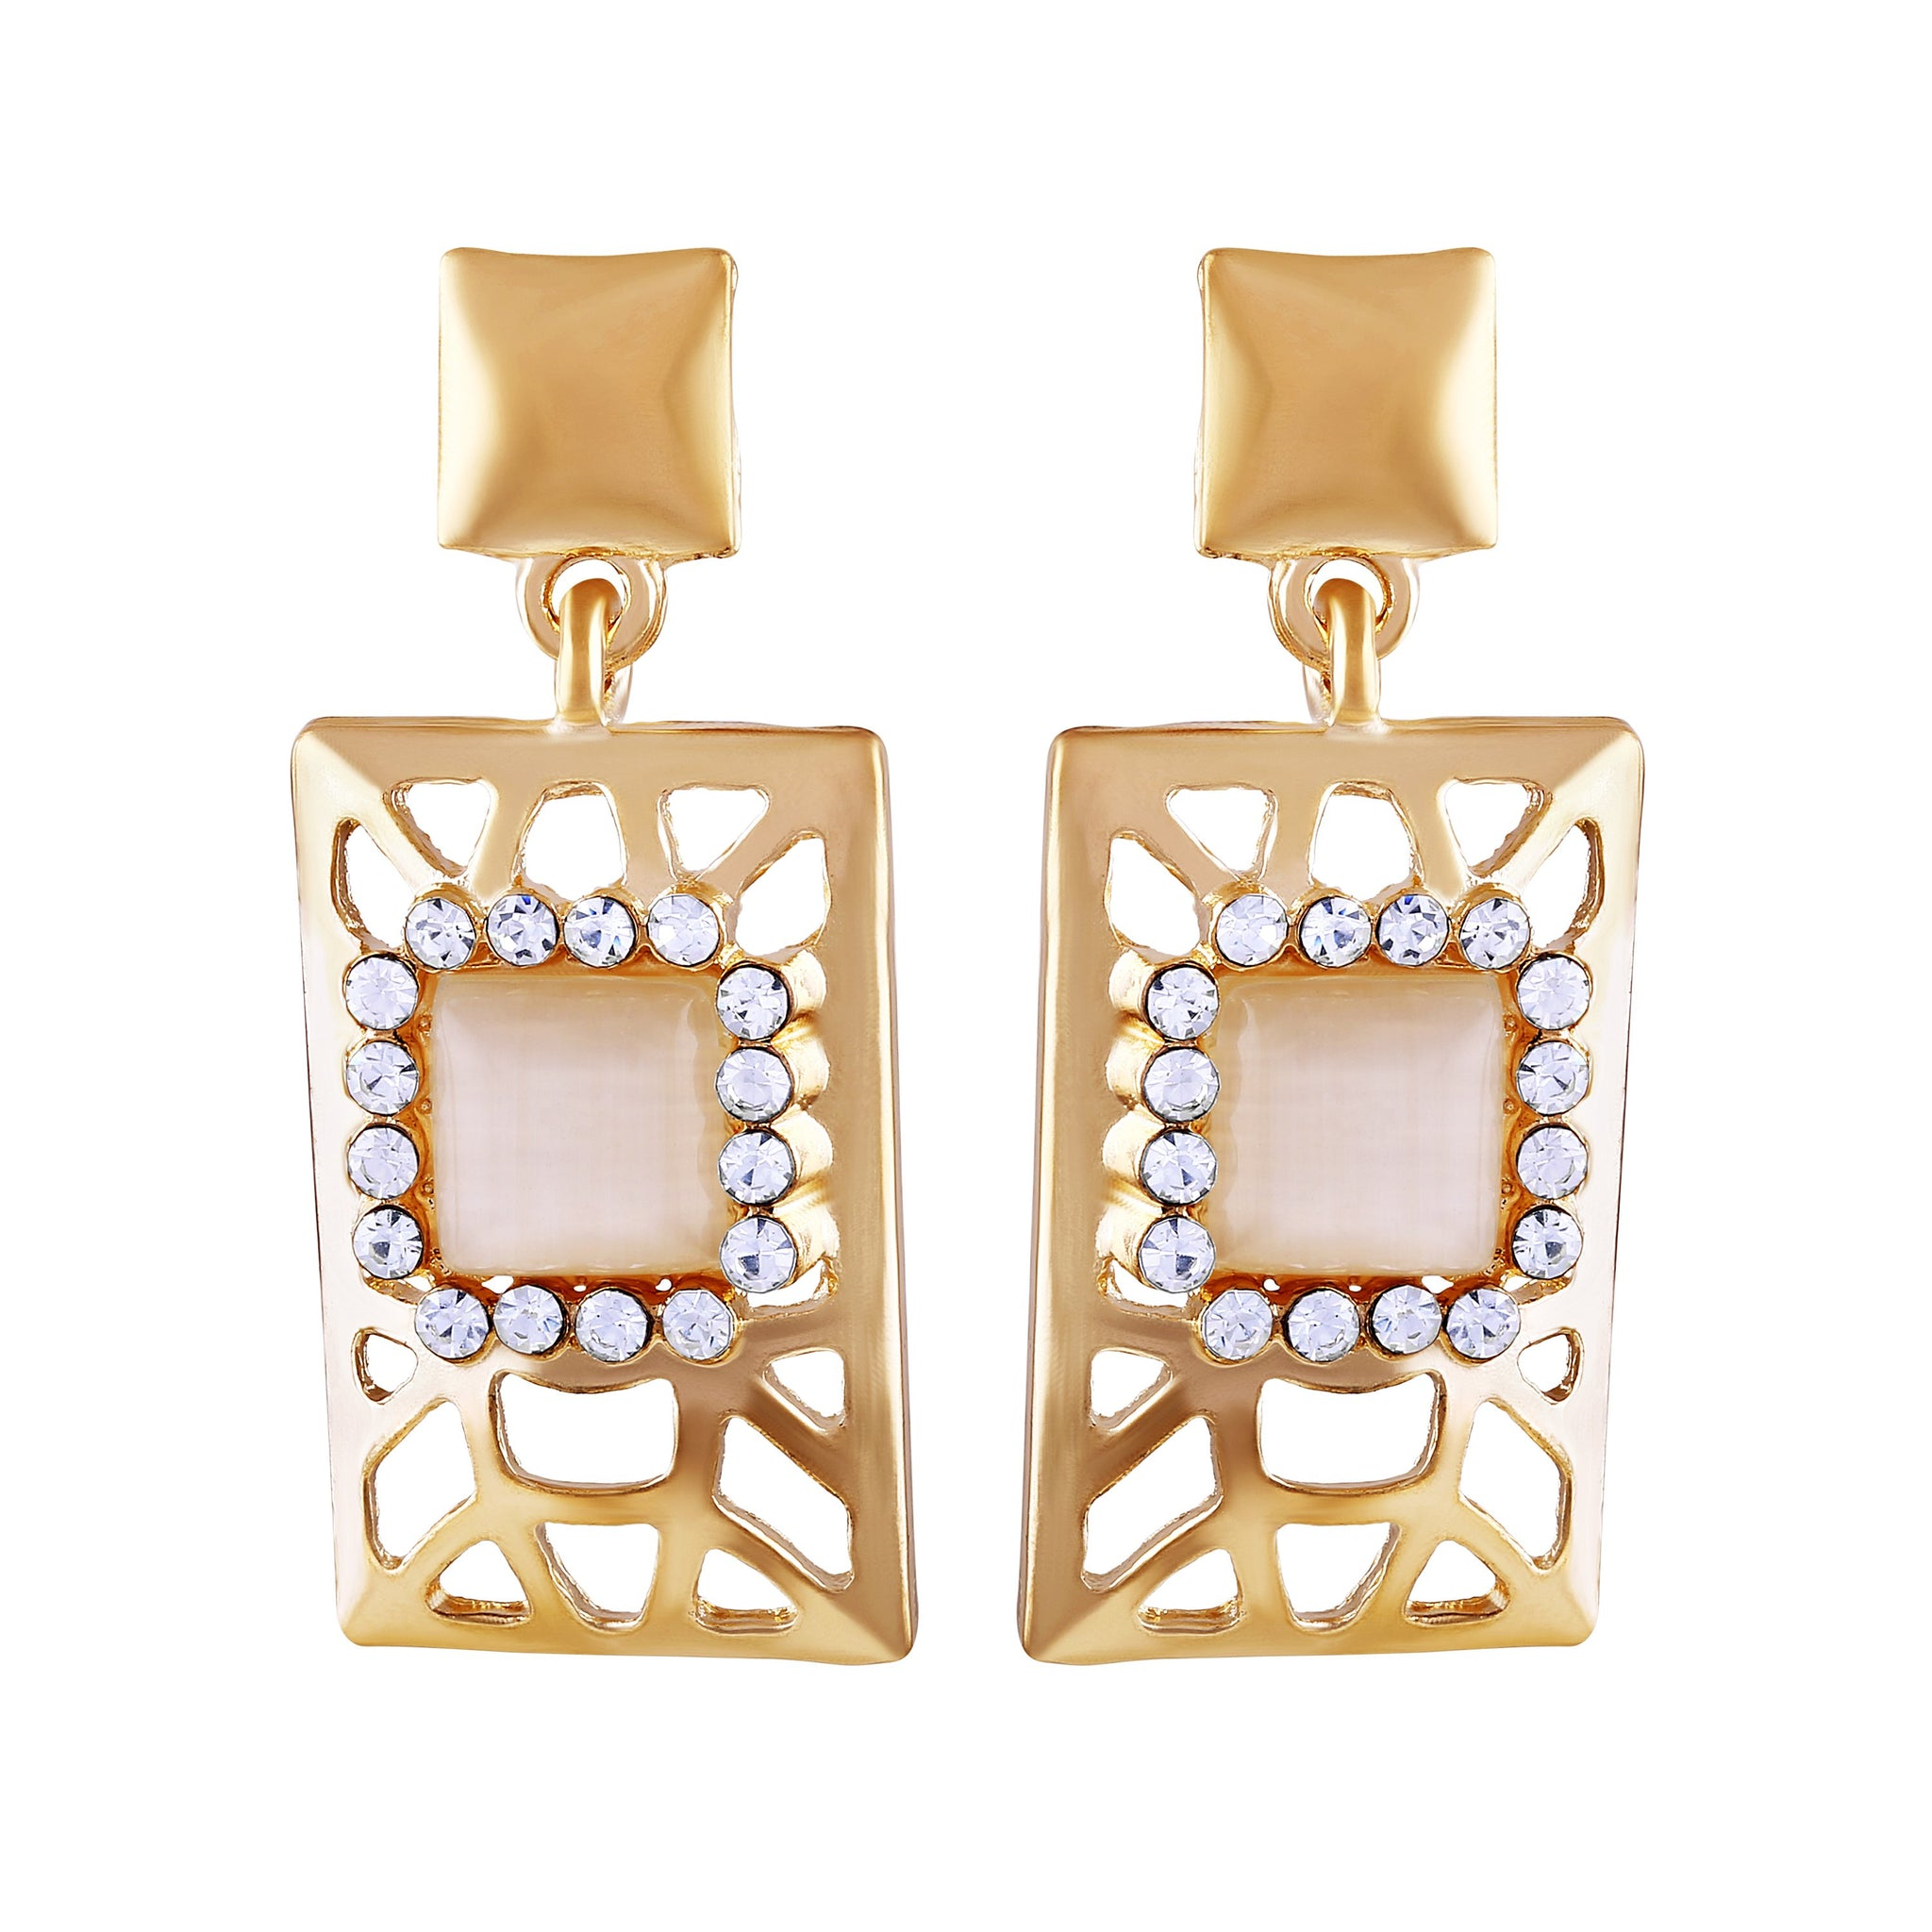 Asmitta Graceful Square Shape Rectangle Gold Plated Dangle Earring For Women